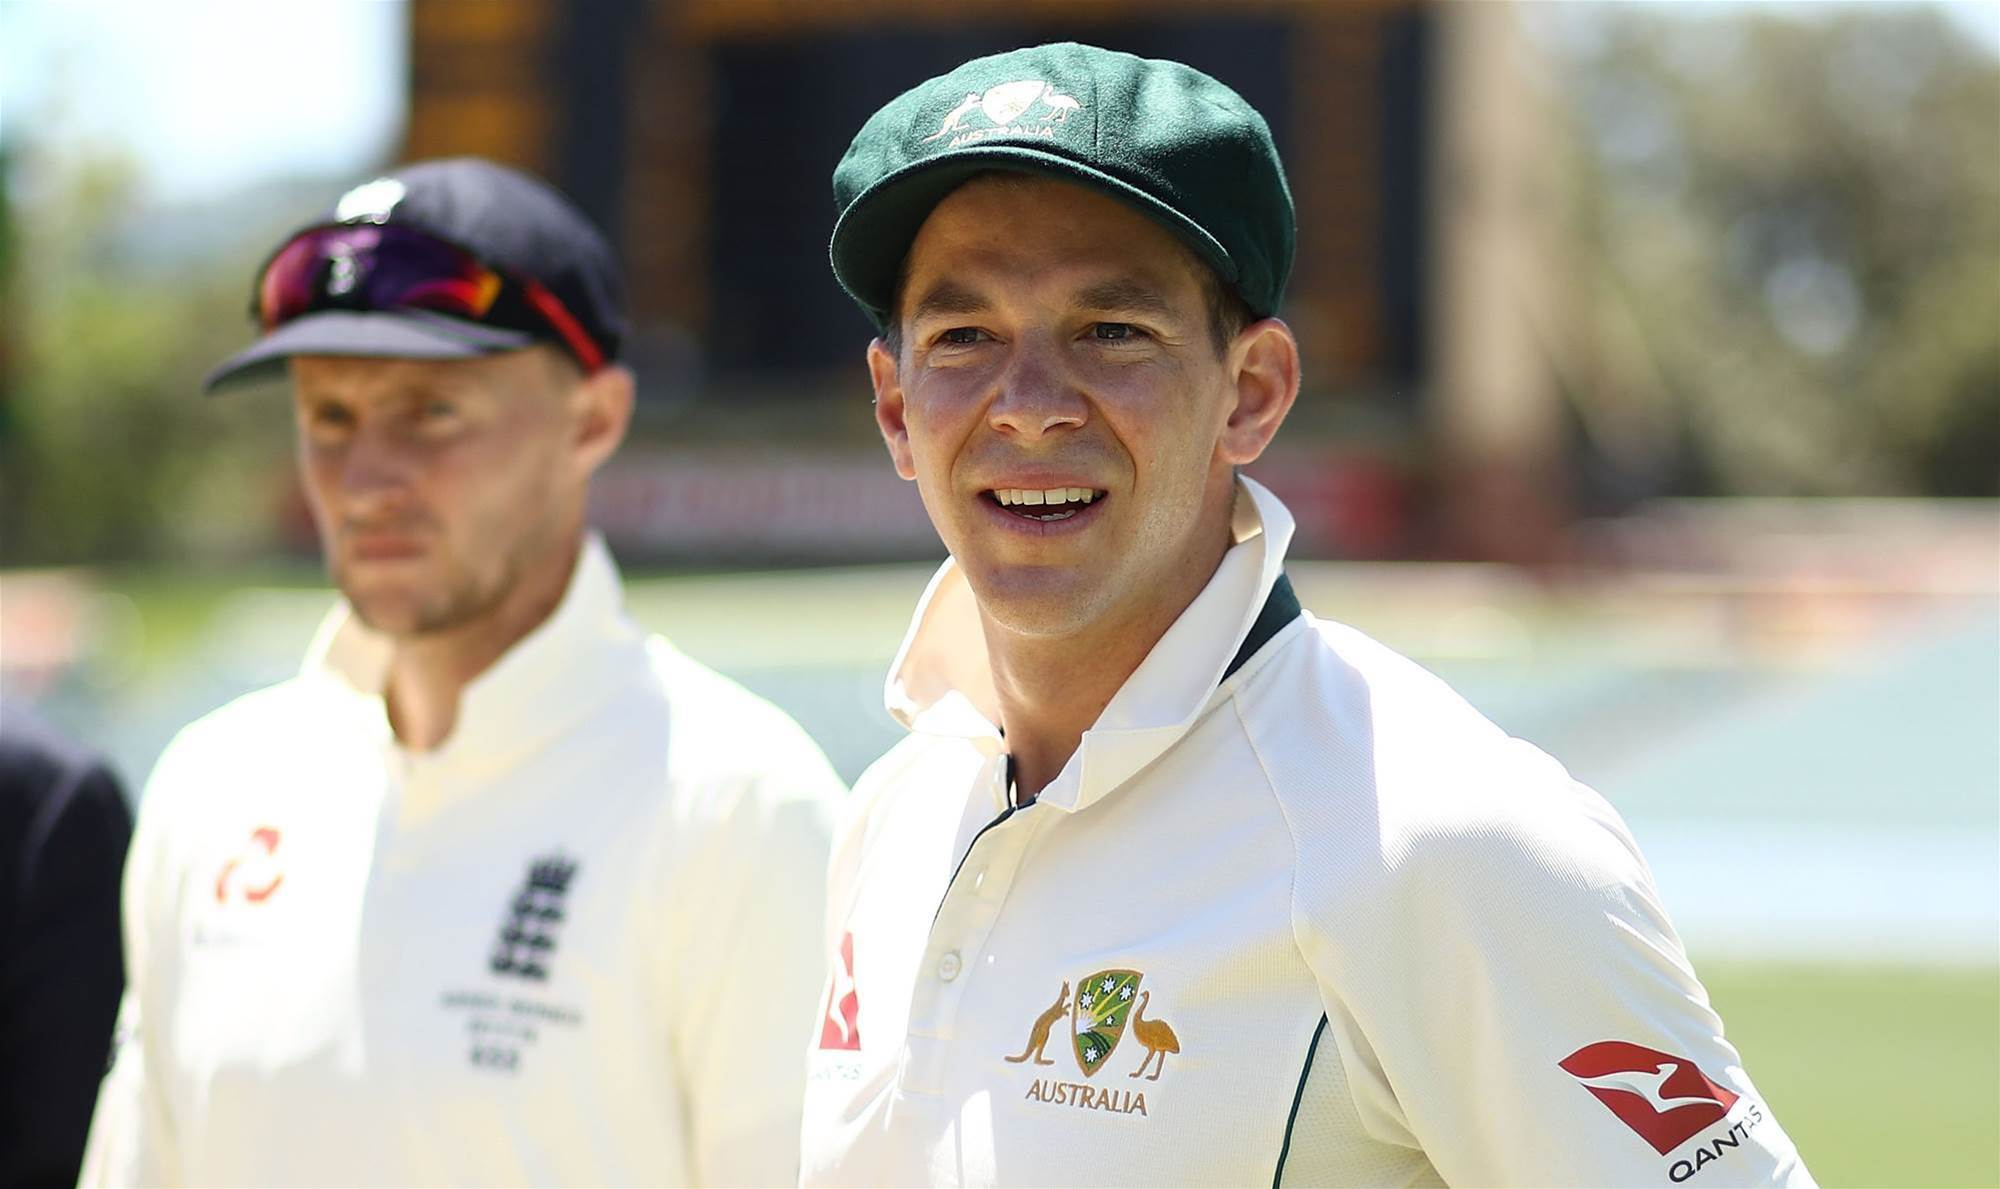 Australia announce Ashes Test squad